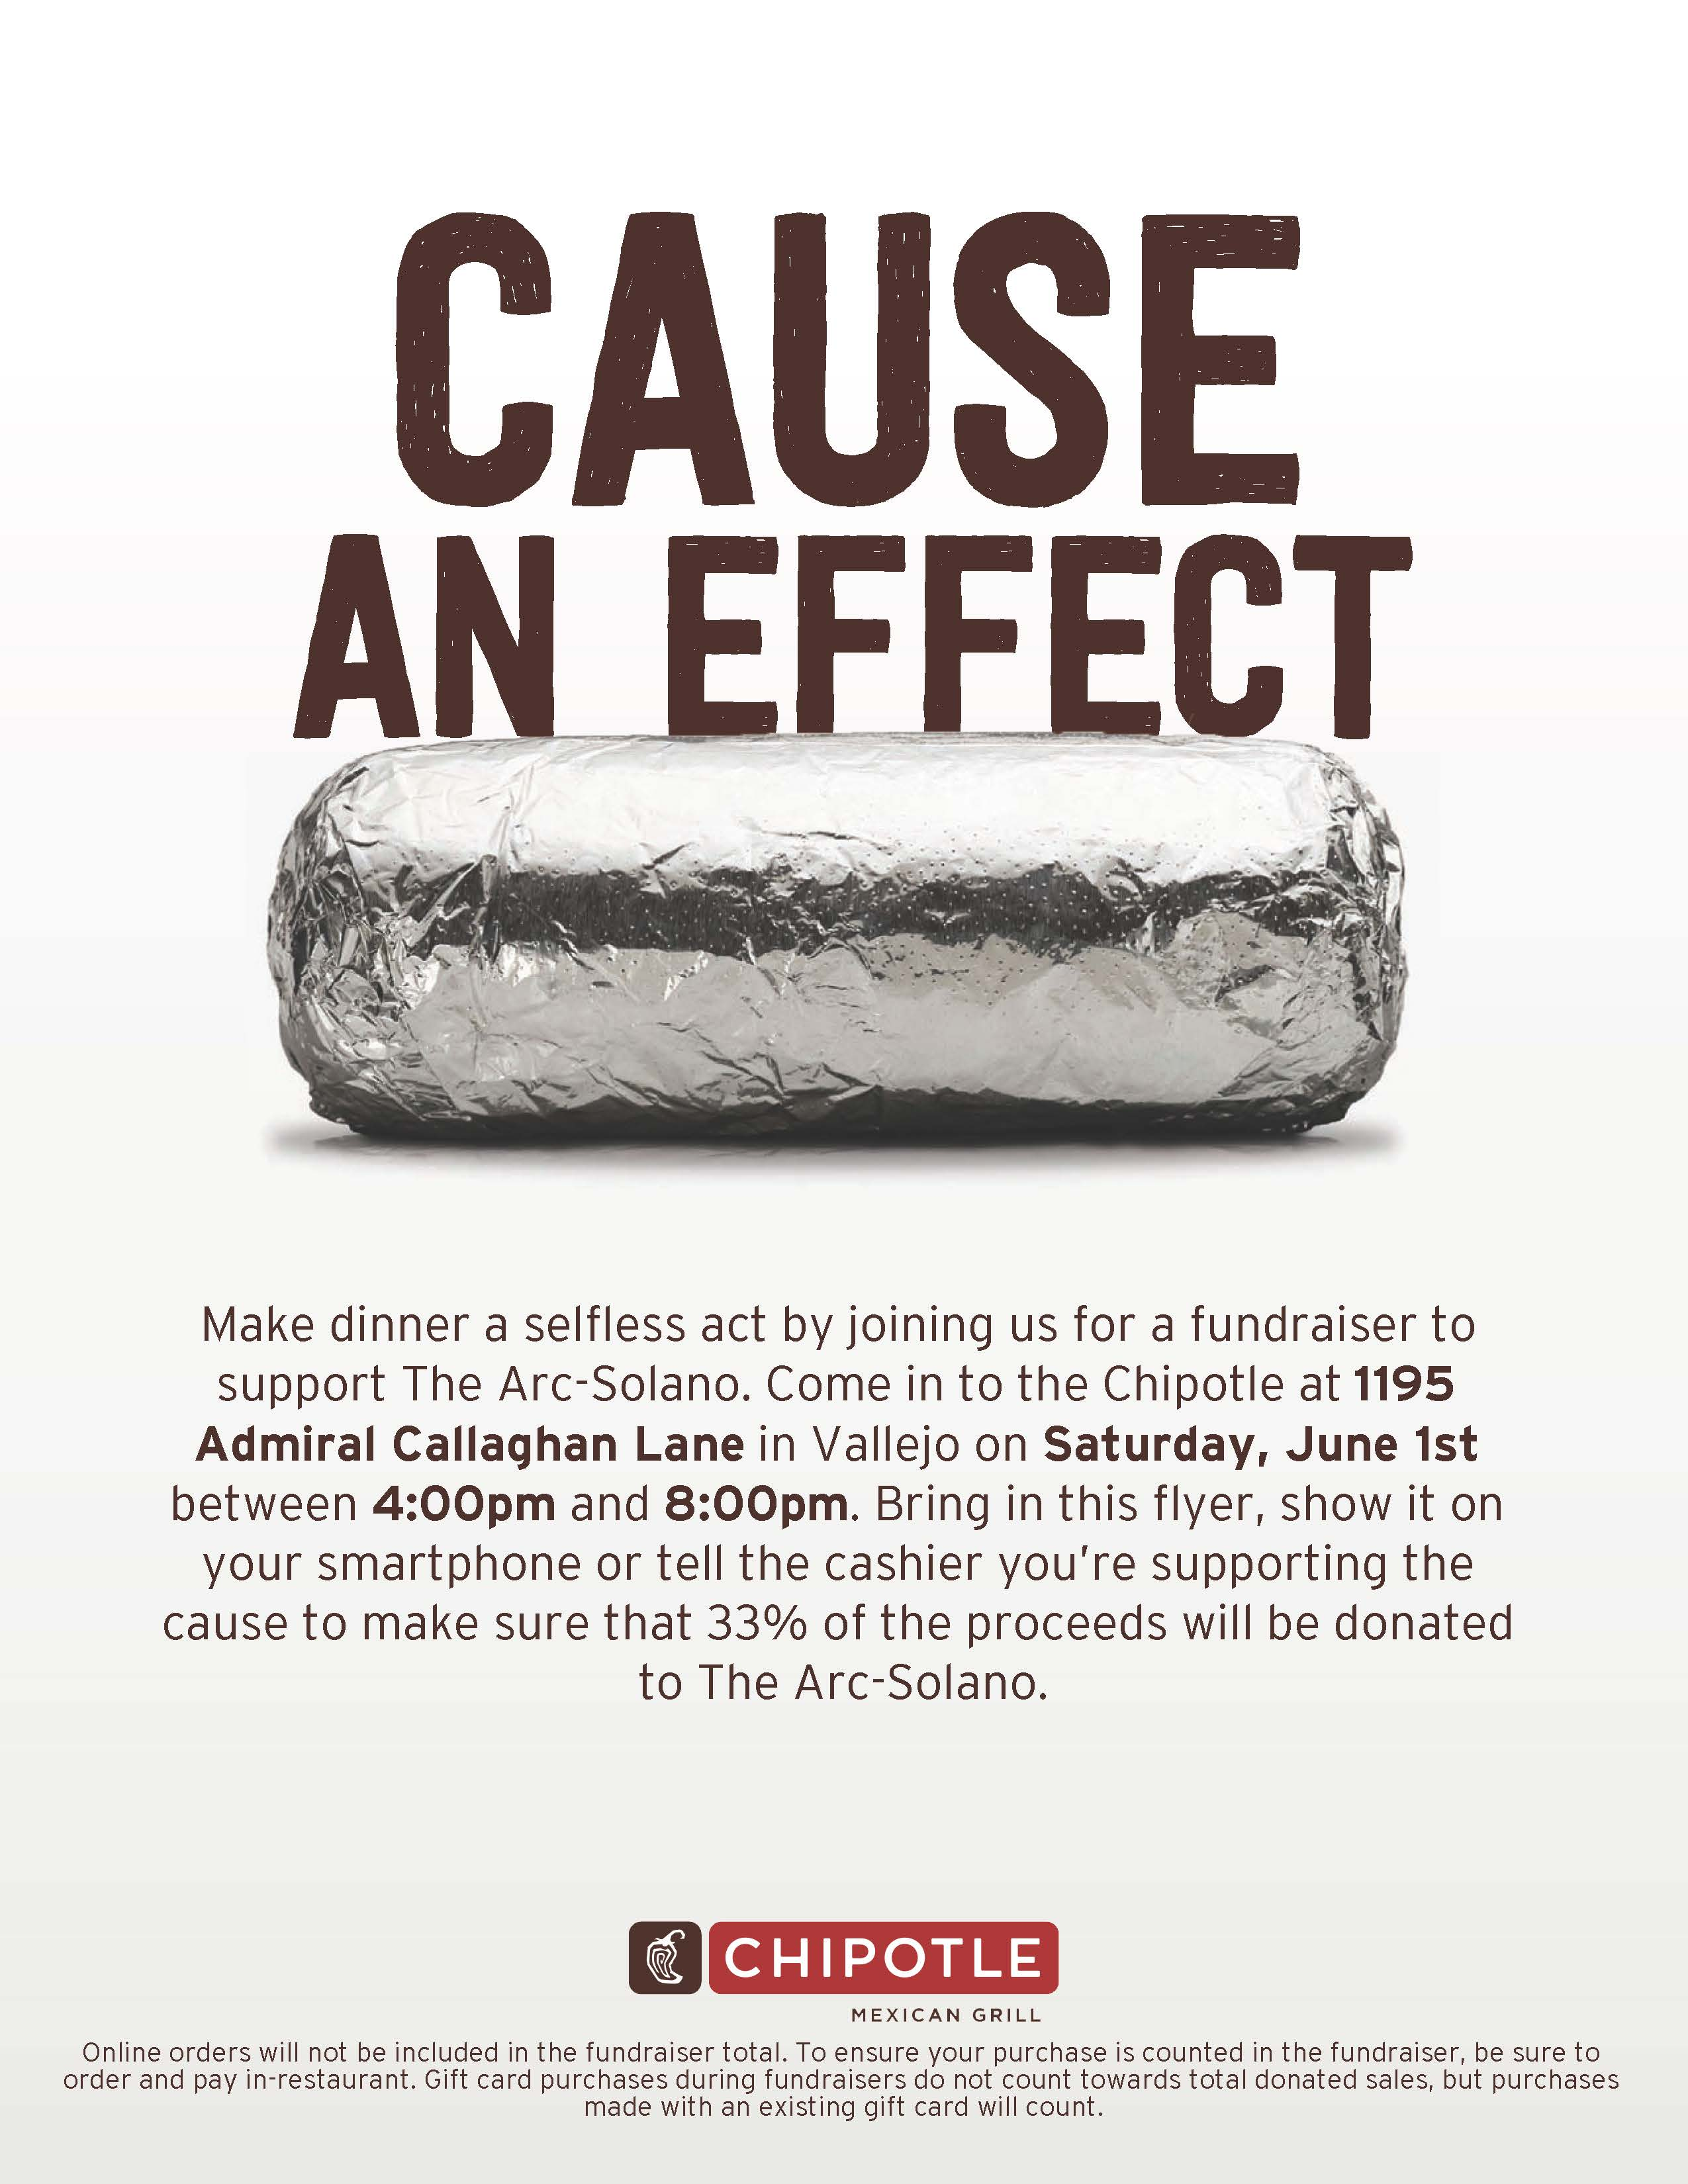 Dine Out @ Chipotle!